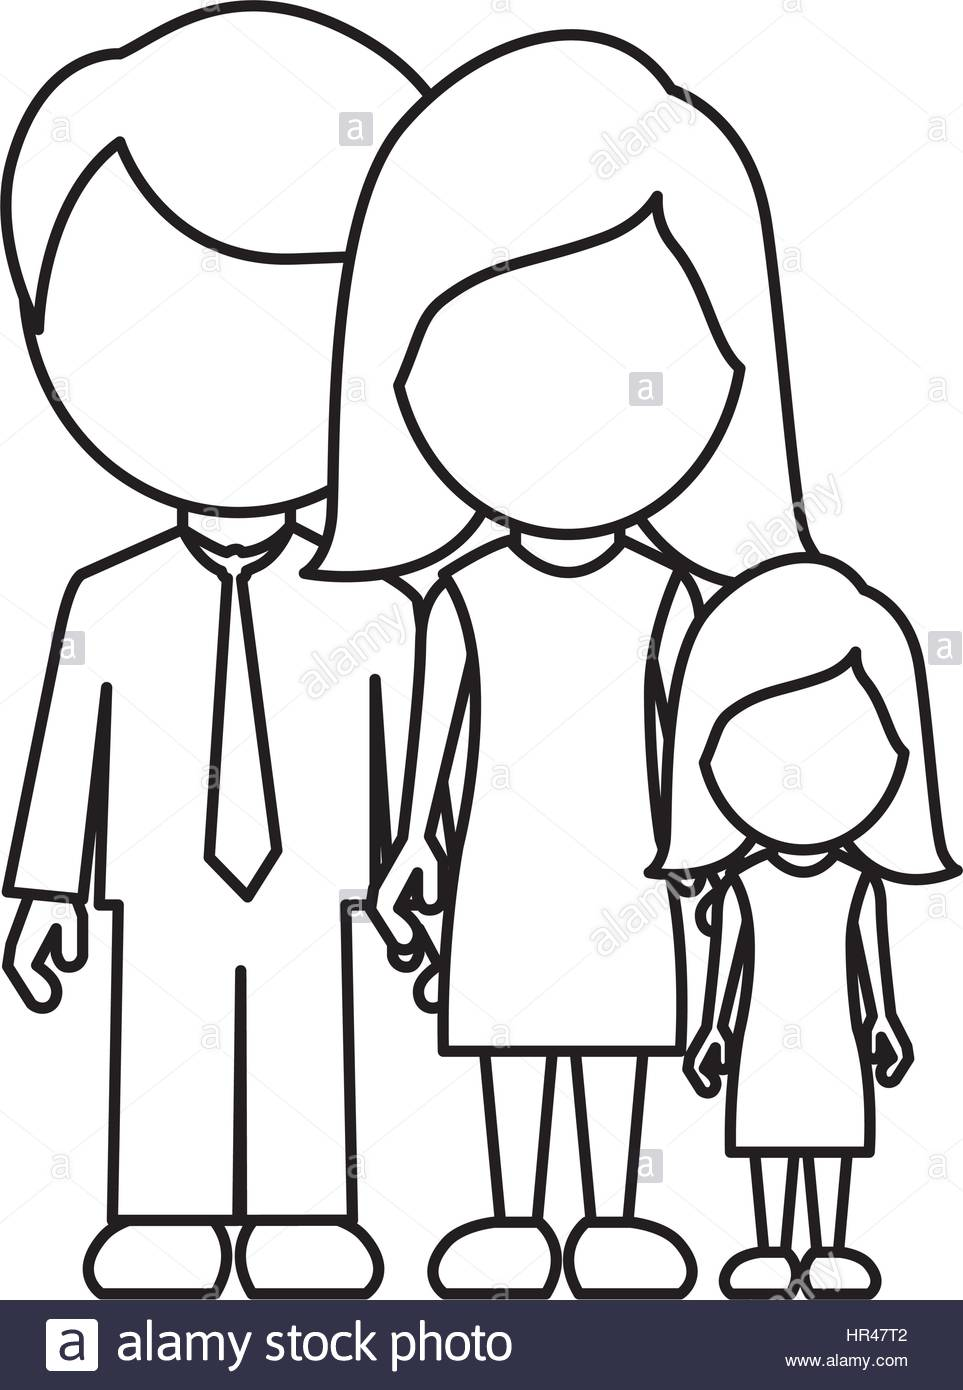 963x1390 Monochrome Contour Faceless With Dad Mom And Daughter In Formal